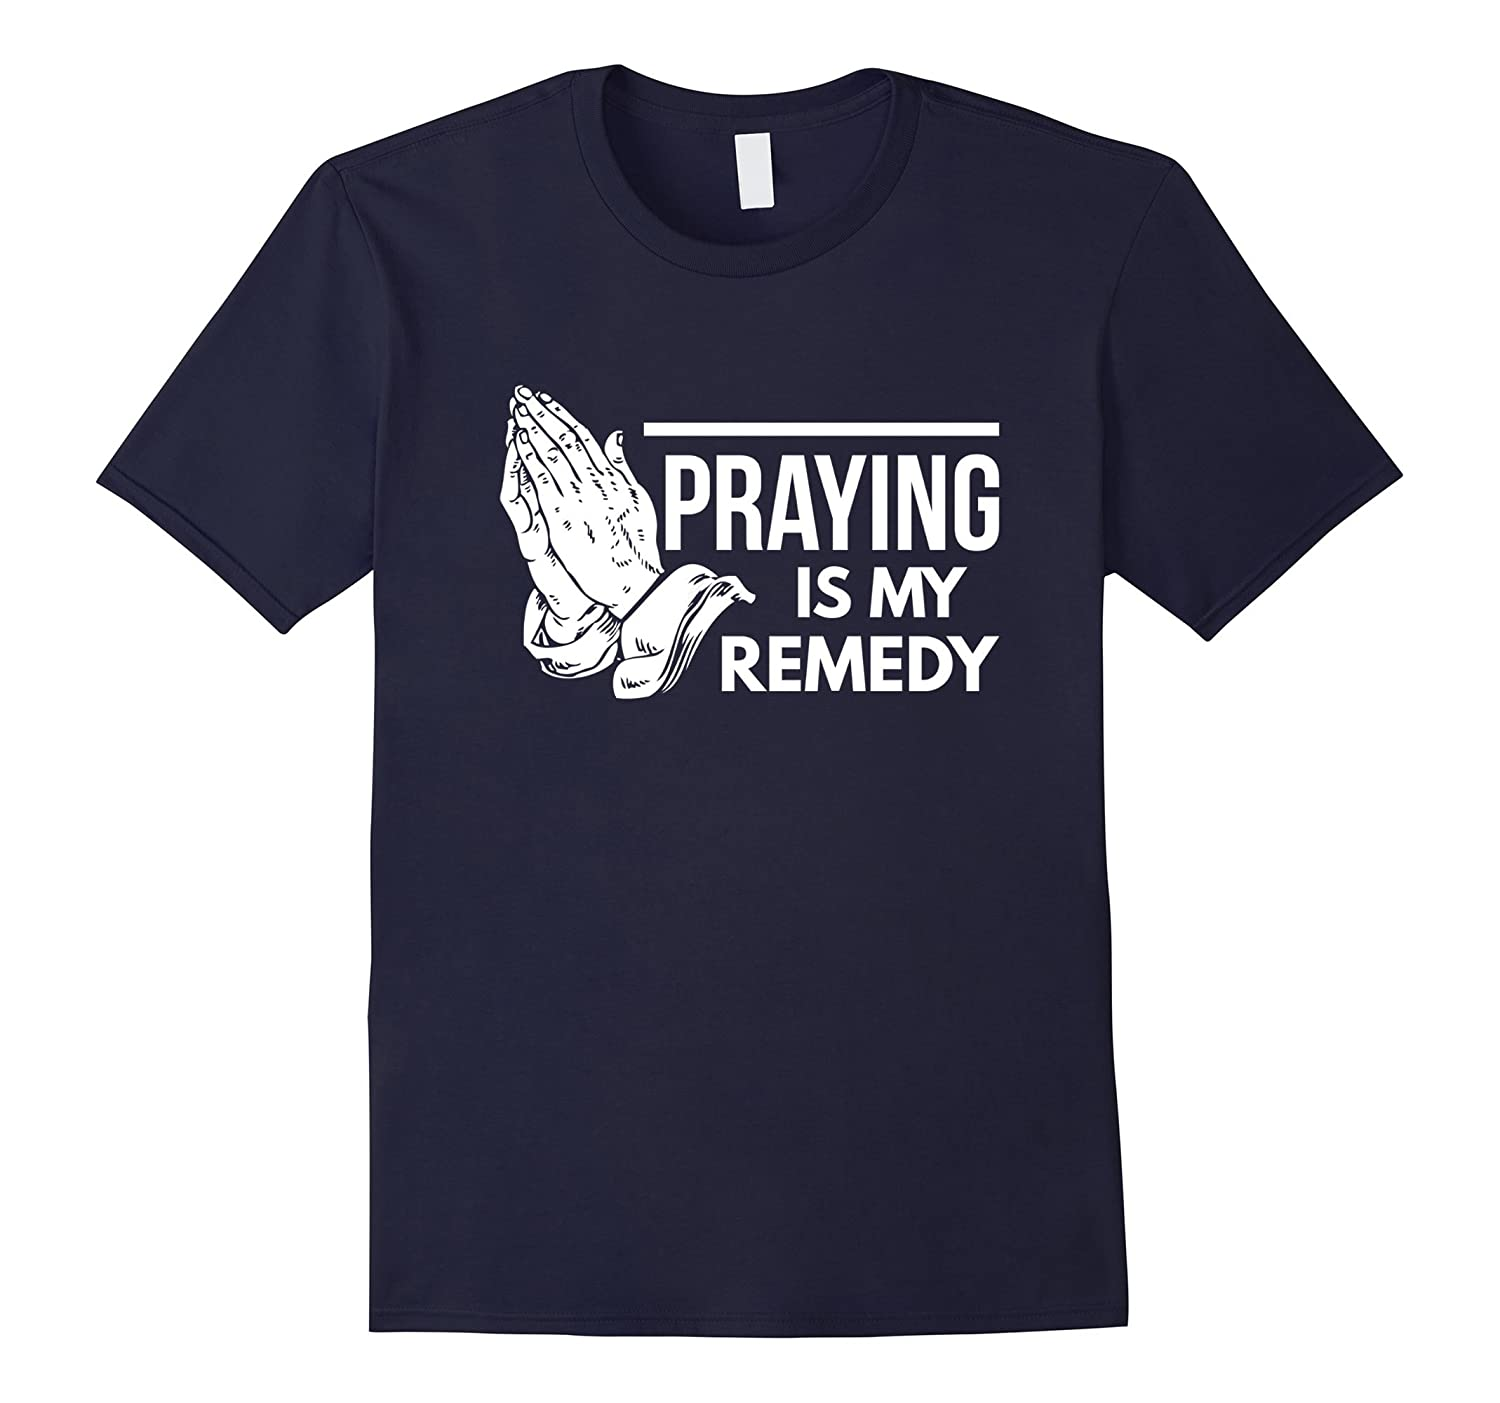 Praying is my remedy pastor priest gift t-shirt-TJ